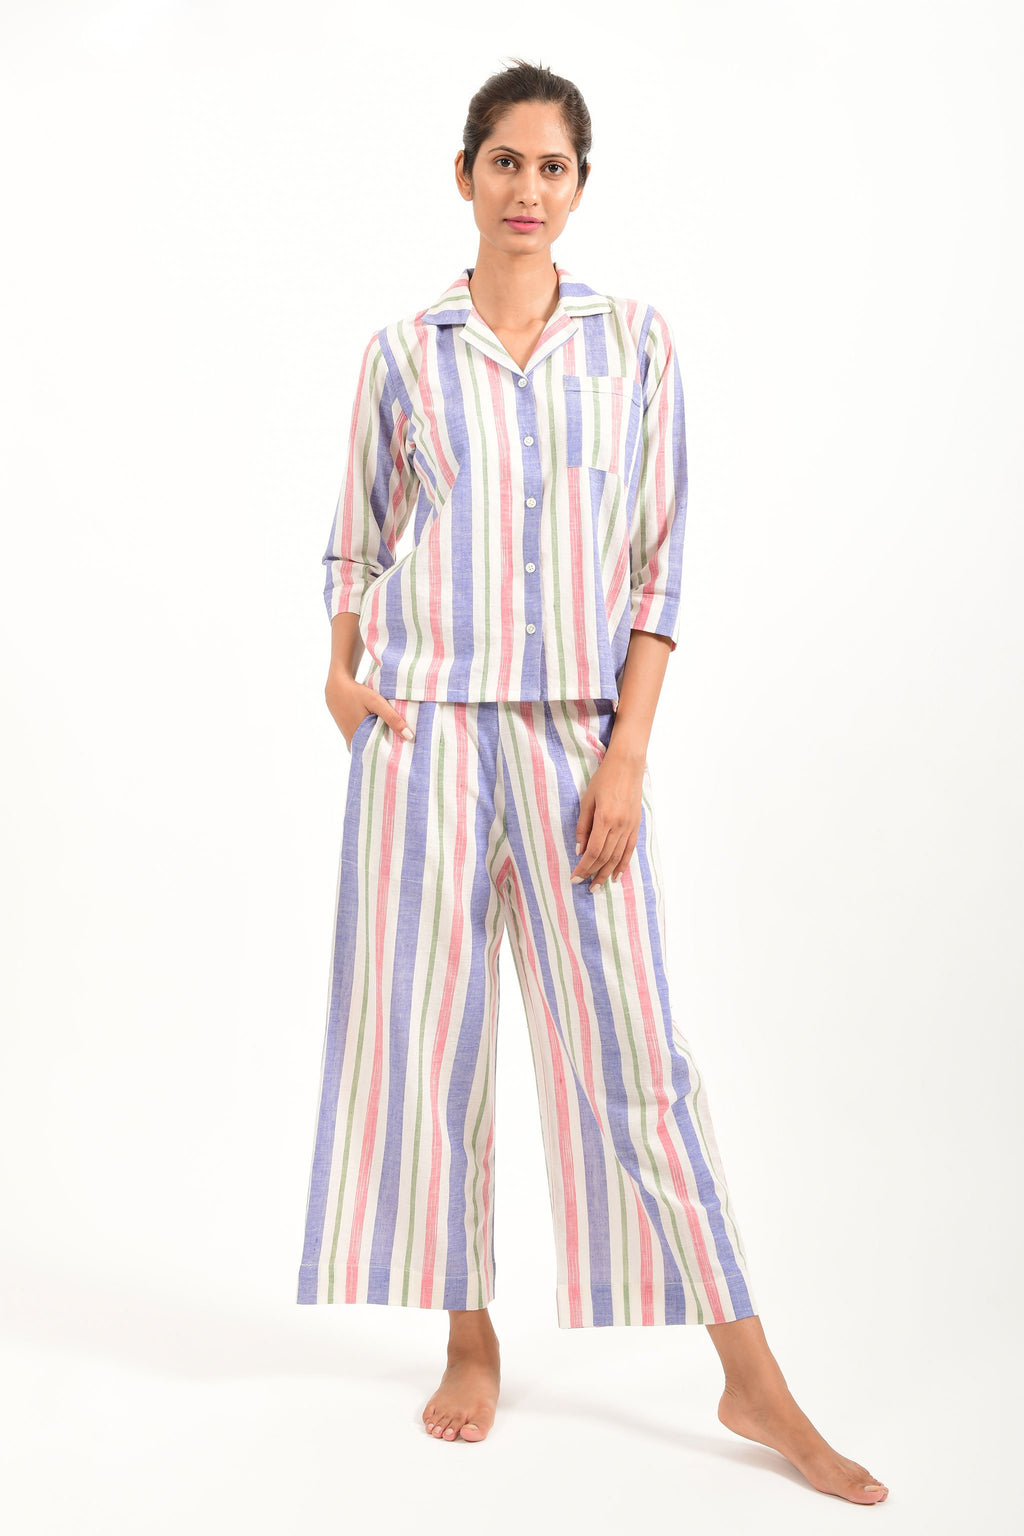 Front pose of an Indian female womenswear fashion model in a candy colored striped azo-free dyed handspun and handwoven khadi cotton nightwear pyjama & shirt by Cotton Rack.